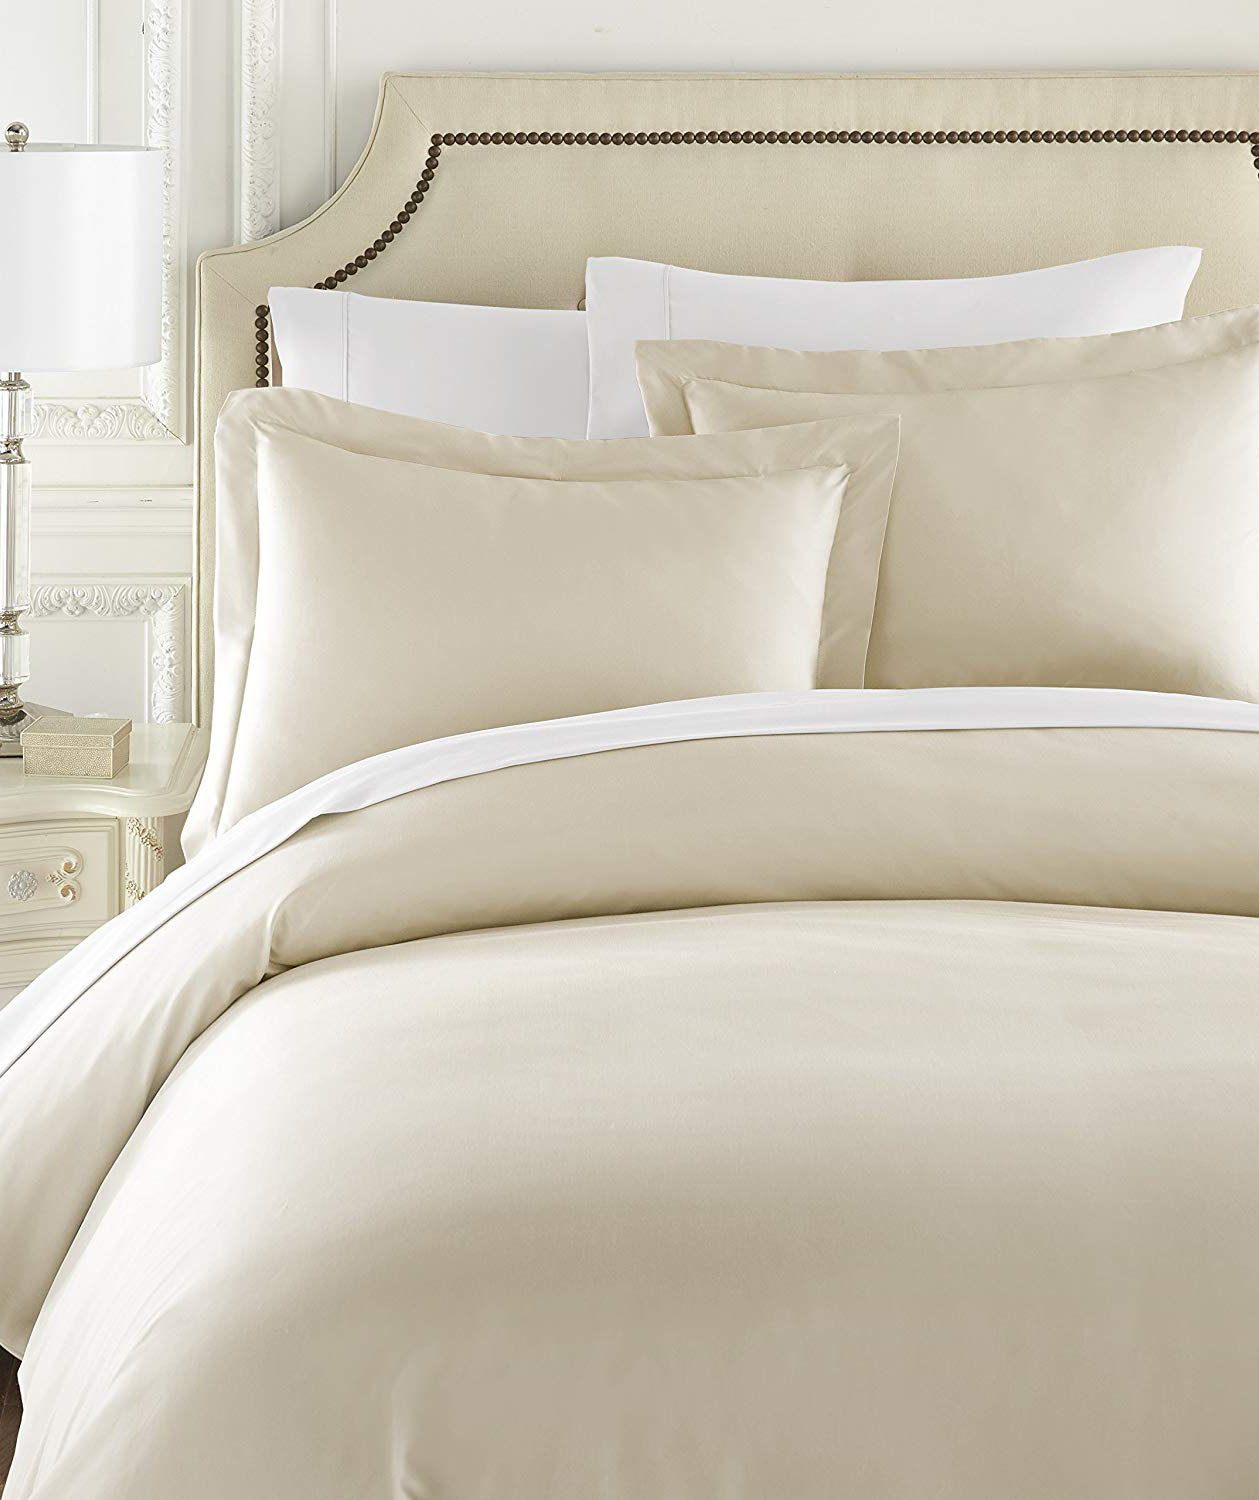 The Best-Selling Amazon Duvet Cover Is Only $25